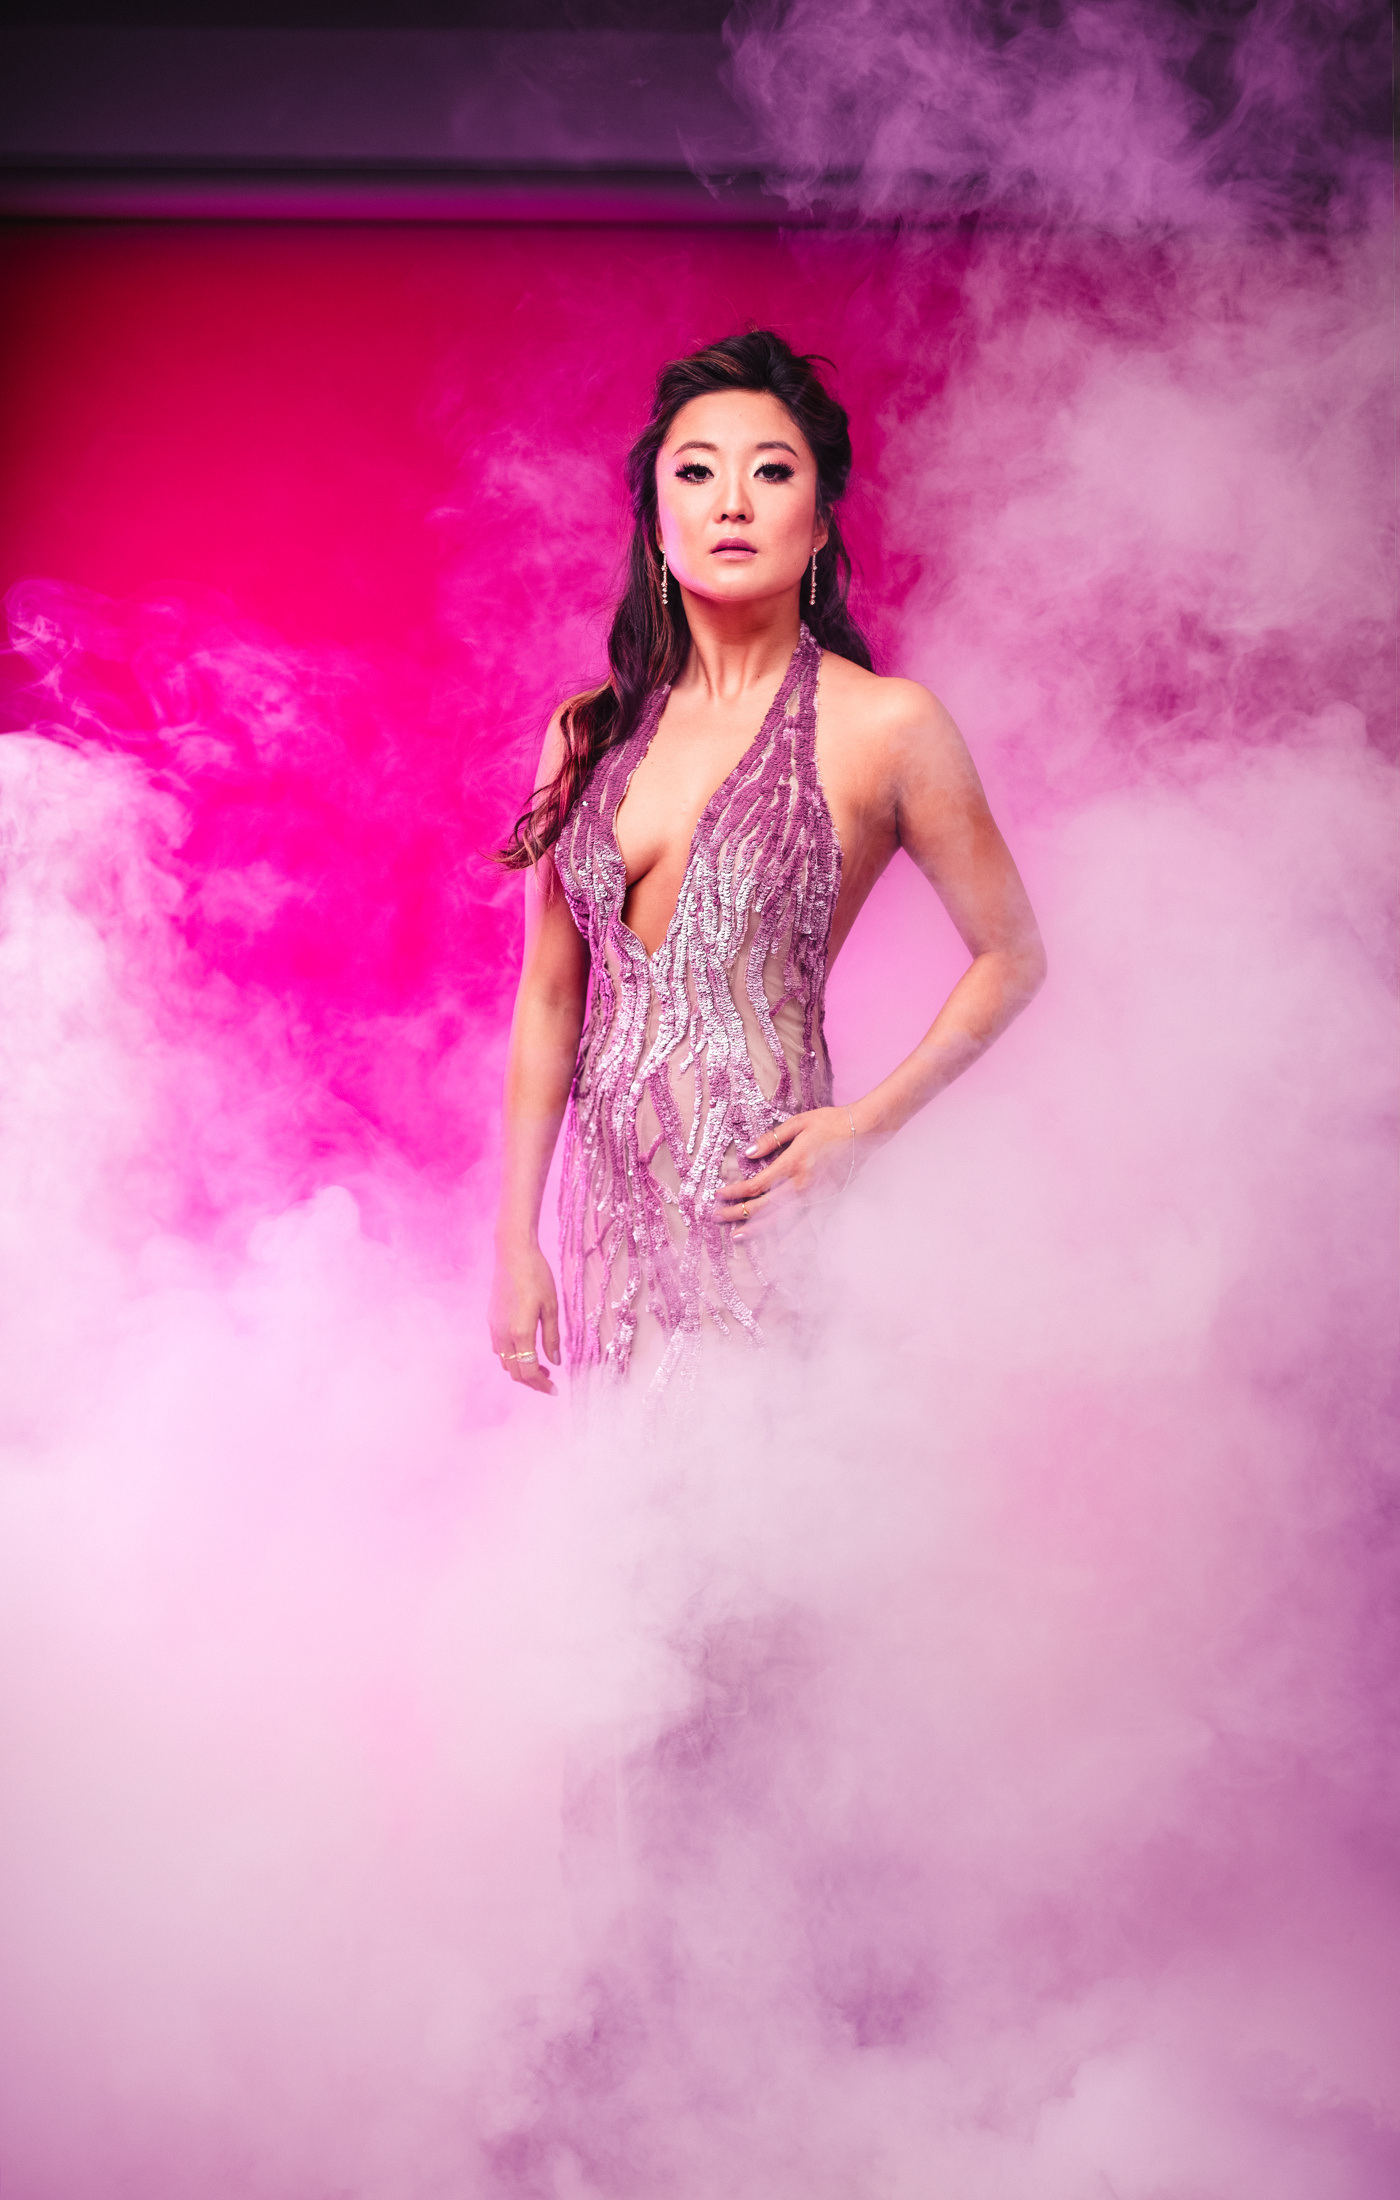 You Can Sit With Her Tony Nominee Ashley Park Opens Up About Connections Going Back To High School In Mean Girls Her Amazing Year Broadway Buzz Broadway Com I'm sorry that people are so jealous of me, but i can't help that i'm popular. tony nominee ashley park opens up about